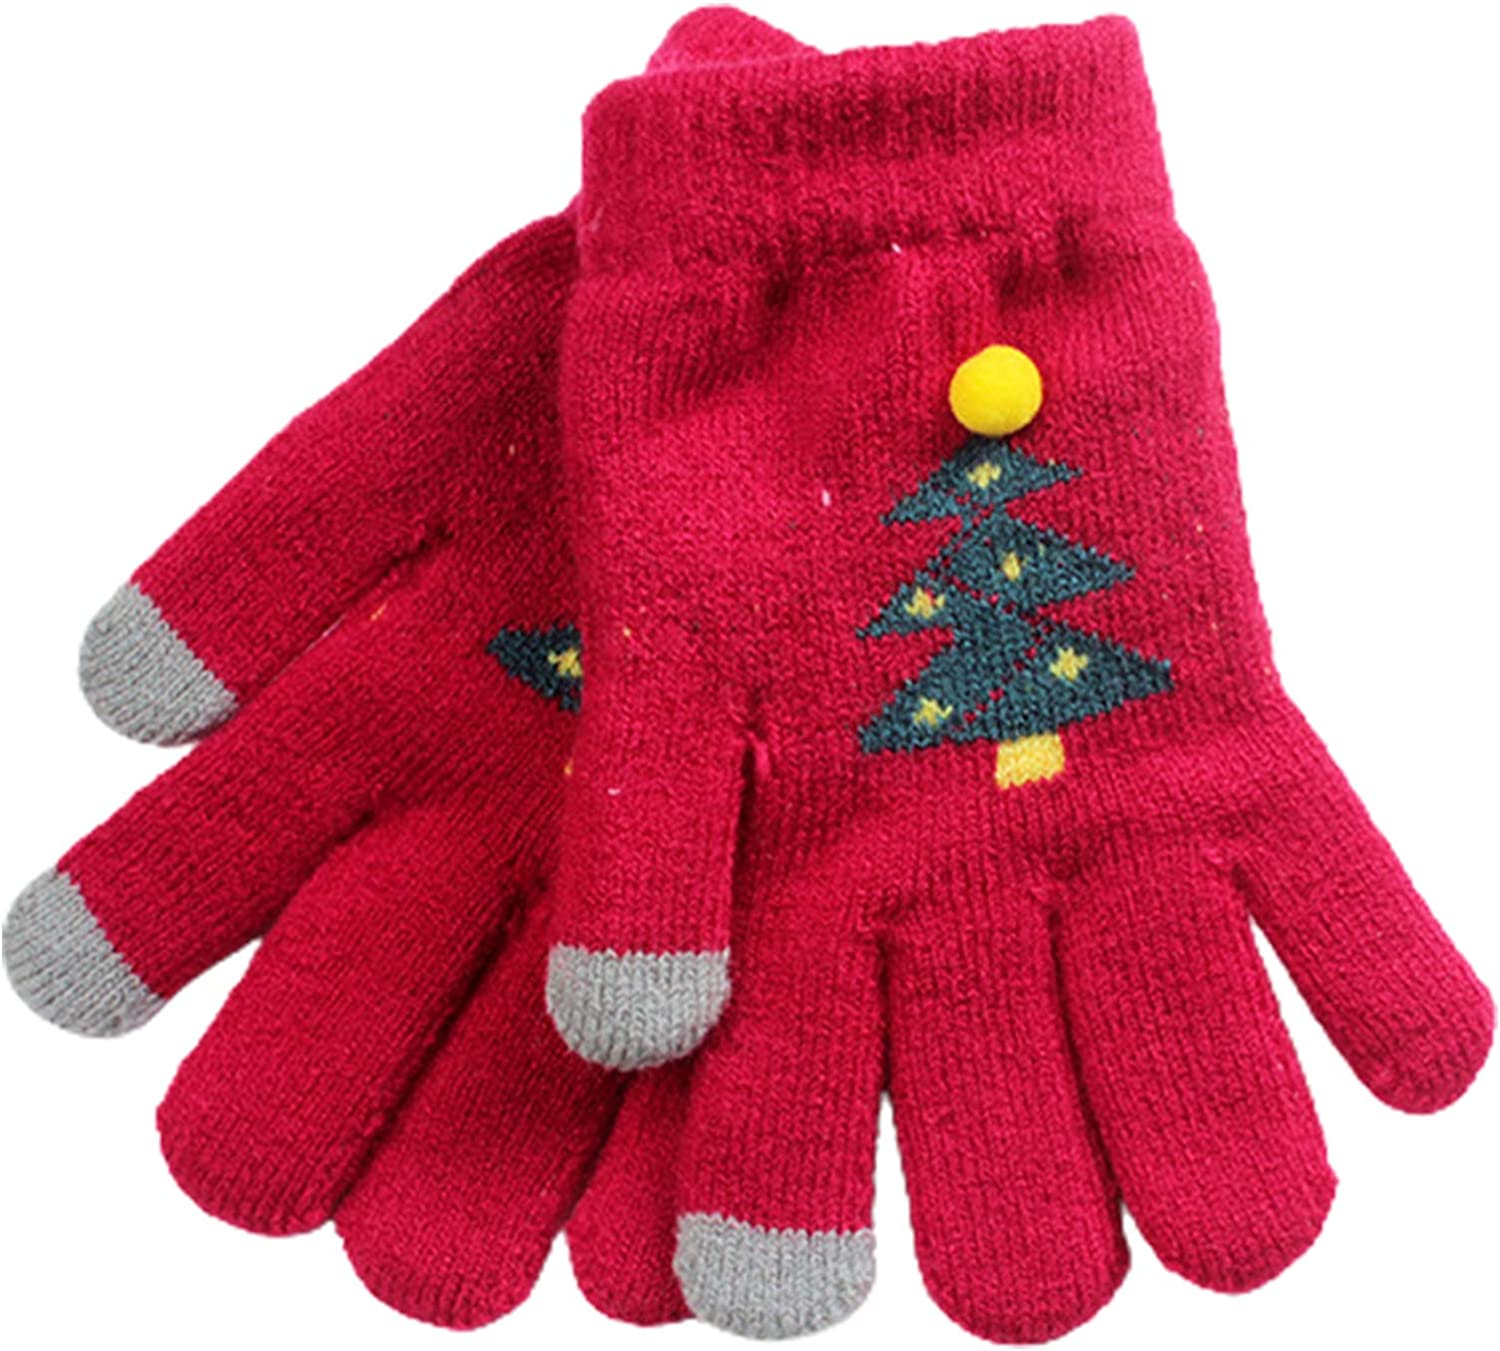 Winter Gloves for Women, Christmas Stretchy Warm Knit Glove Full Finger Cartoon Tree Plush Warm Thermal Soft Lining Mittens